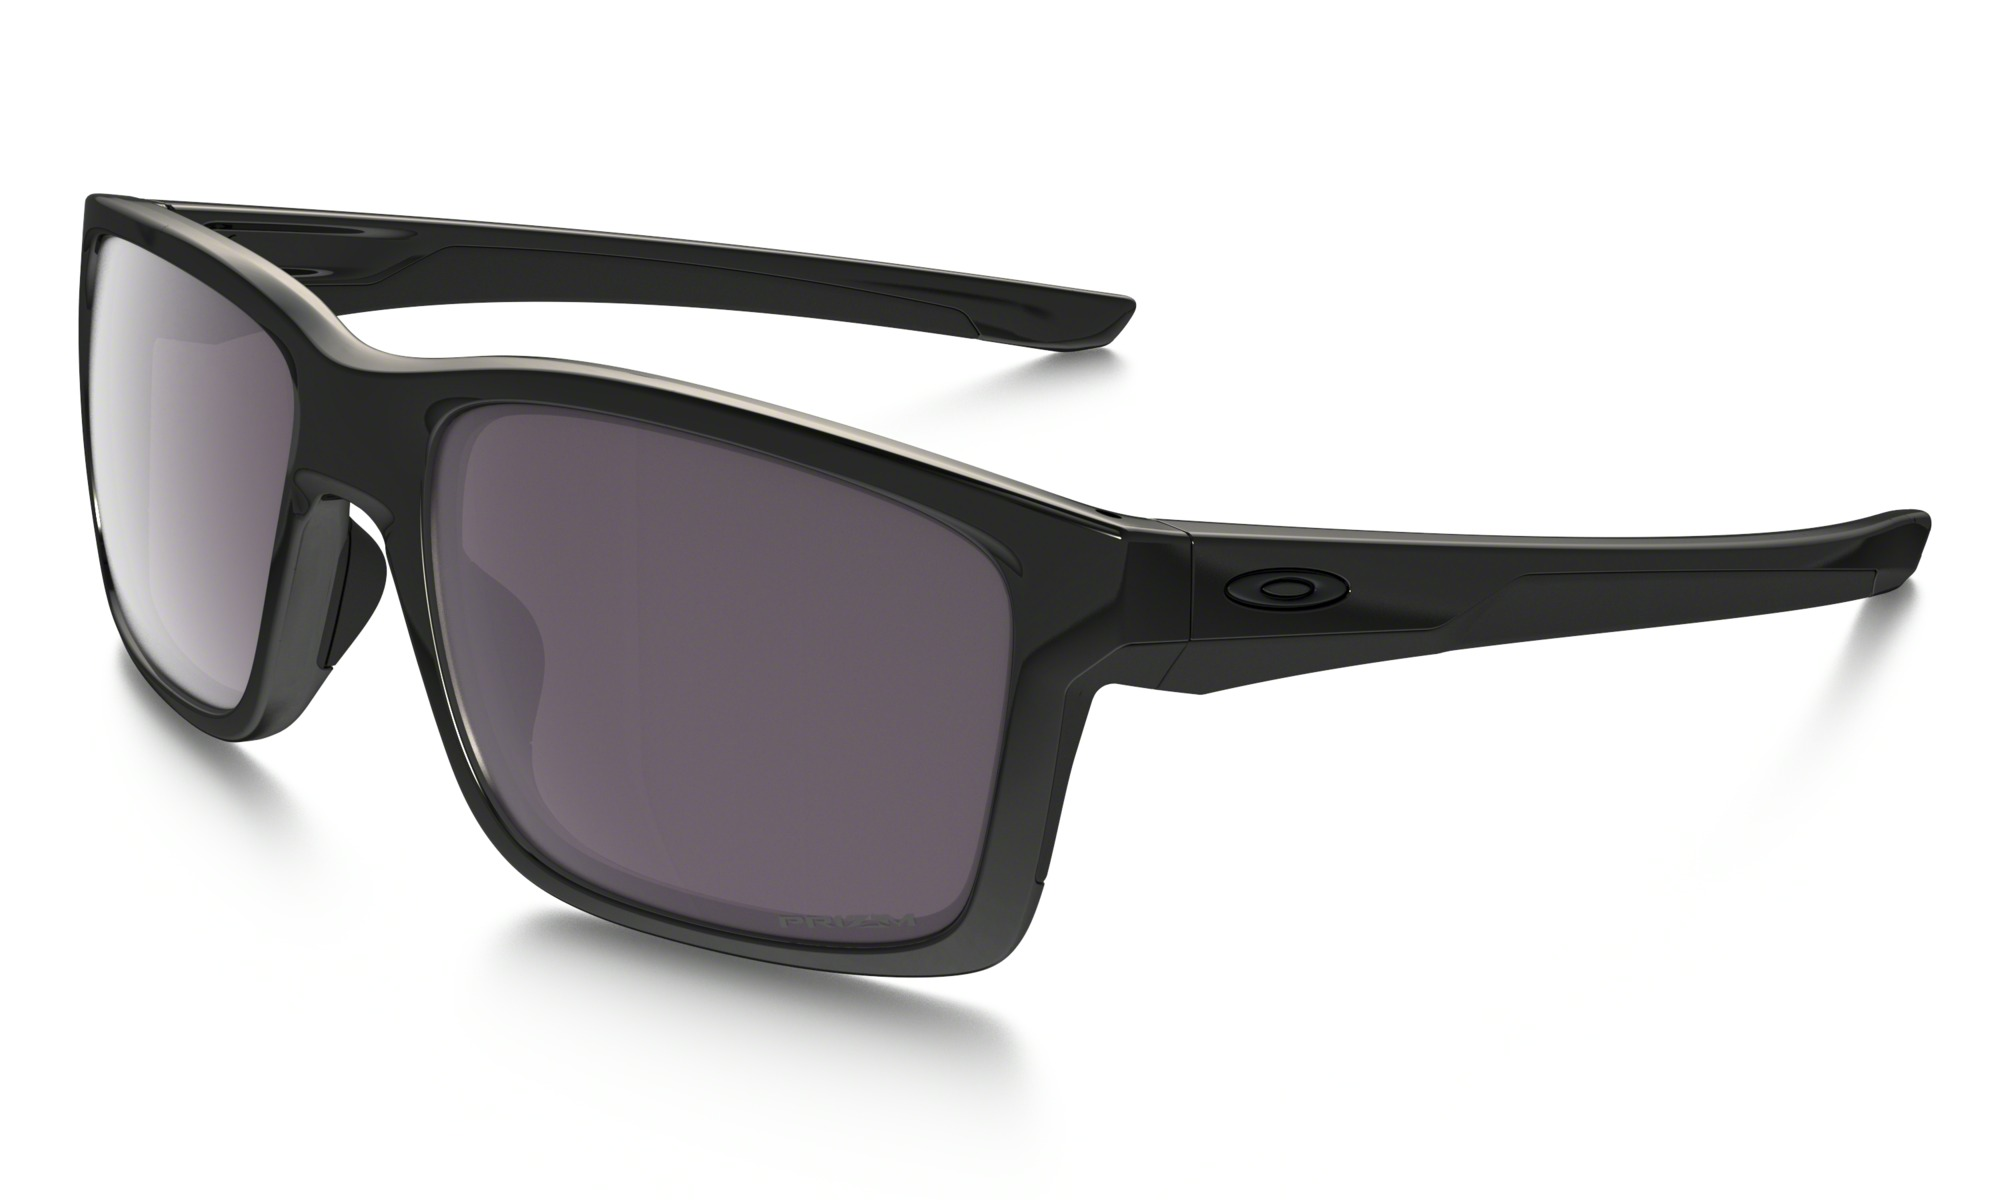 1b0be7ead5a06 Product Inquiry. Name  . Email  . Phone  . Subject MAINLINK POLISHED BLACK    PRIZM DAILY POLARIZED